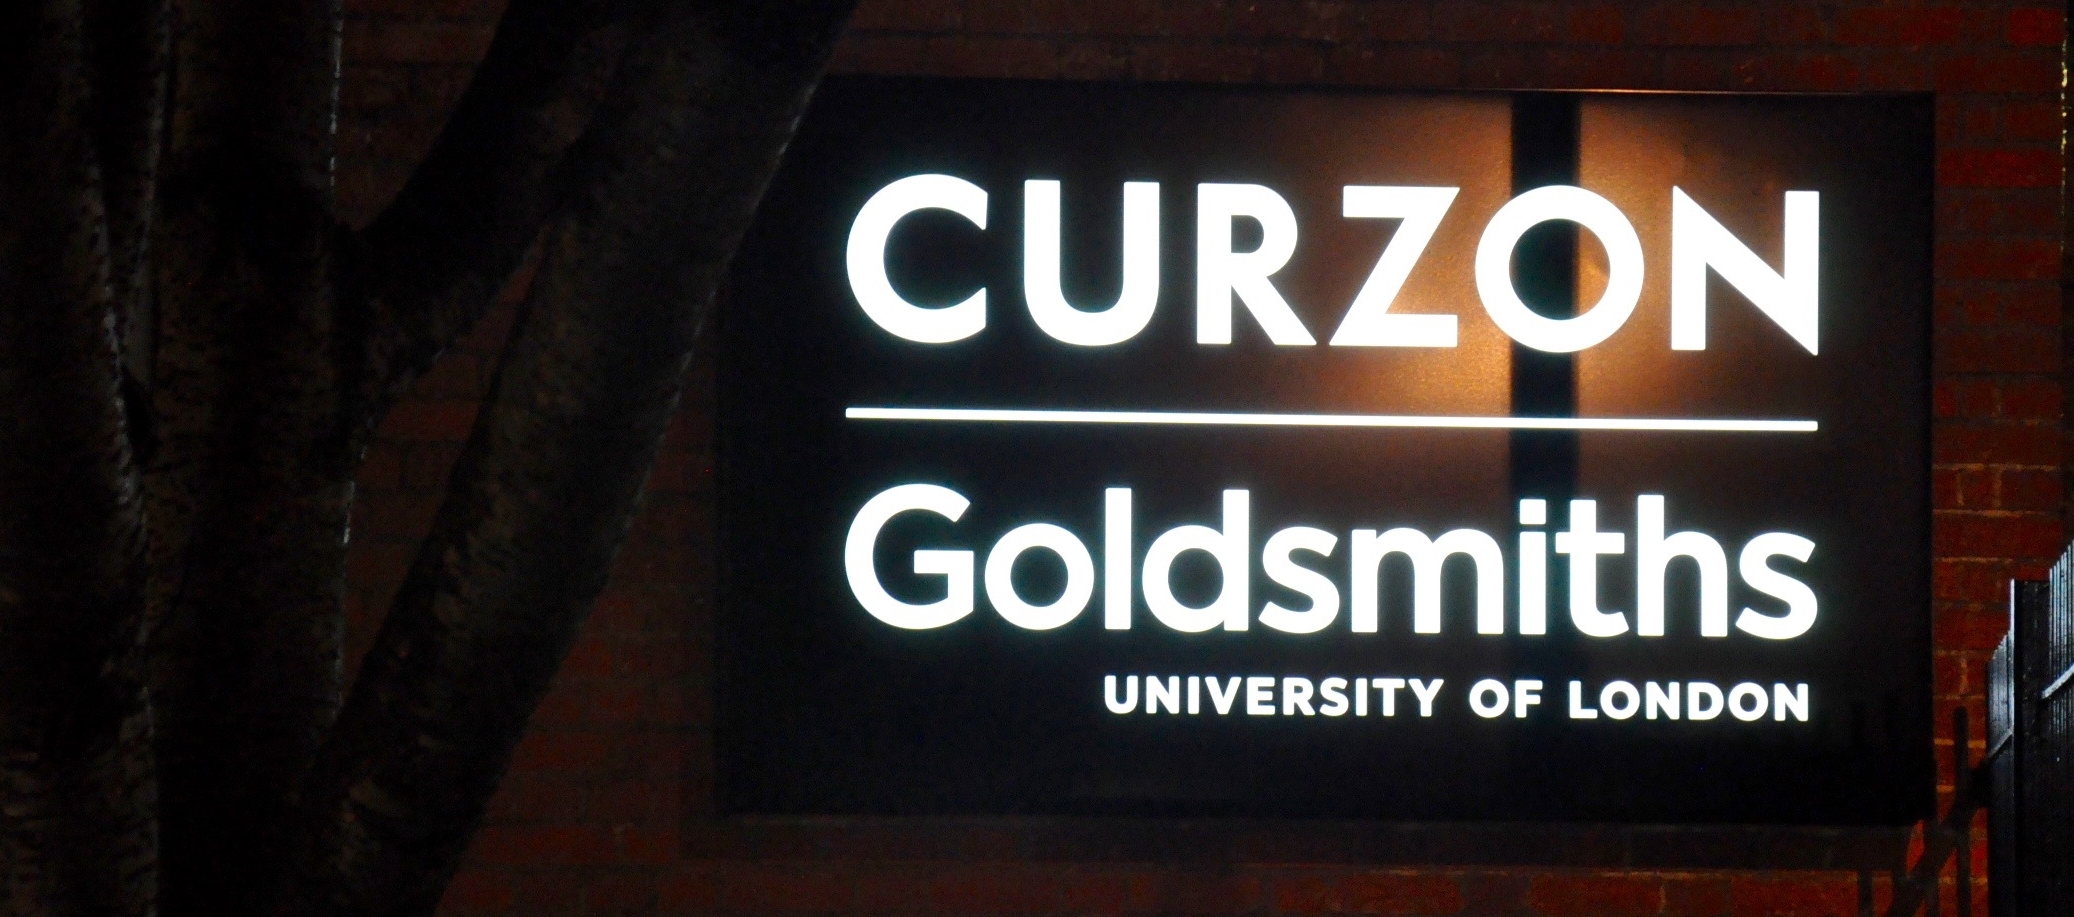 goldsmiths sign.jpg